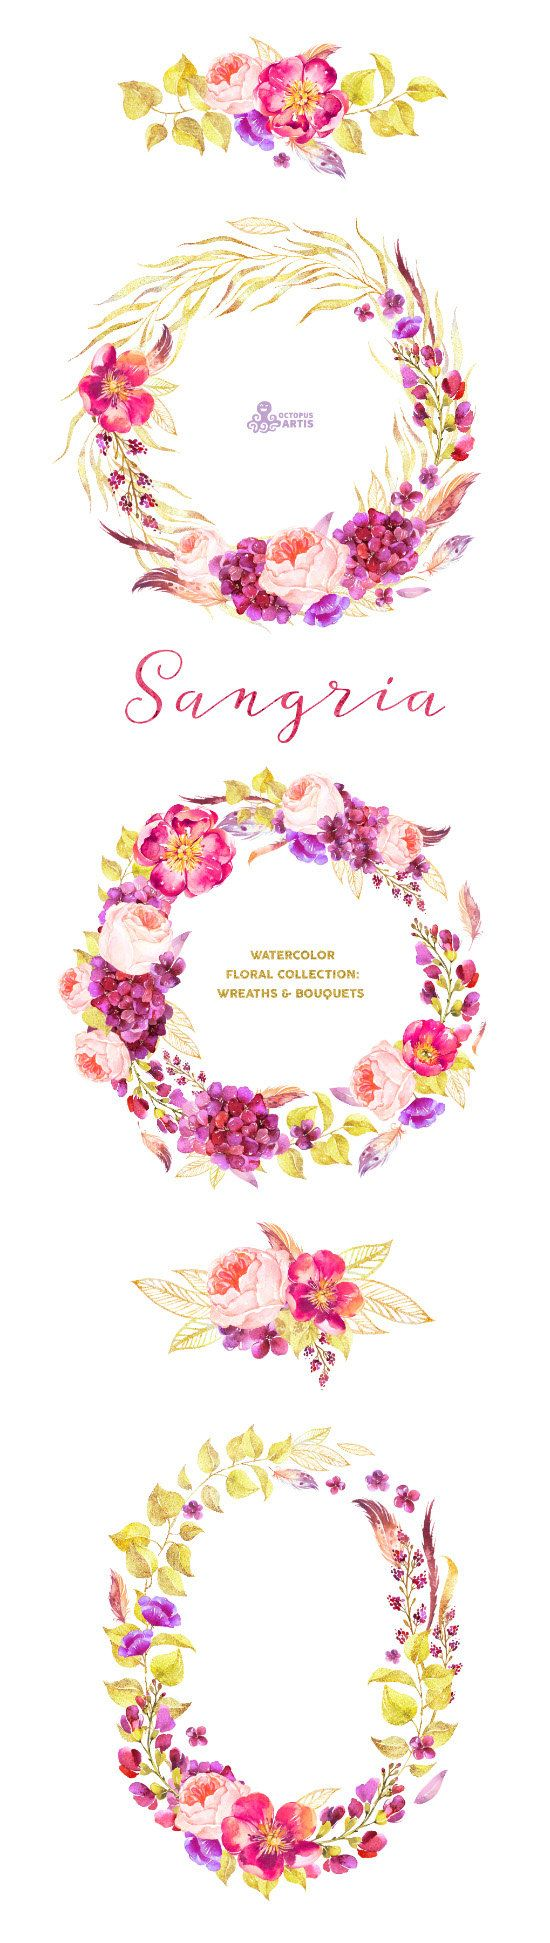 This set of high quality hand painted watercolor floral Wreaths and Bouquets in Hires. Perfect graphic for wedding invitations, greeting cards,